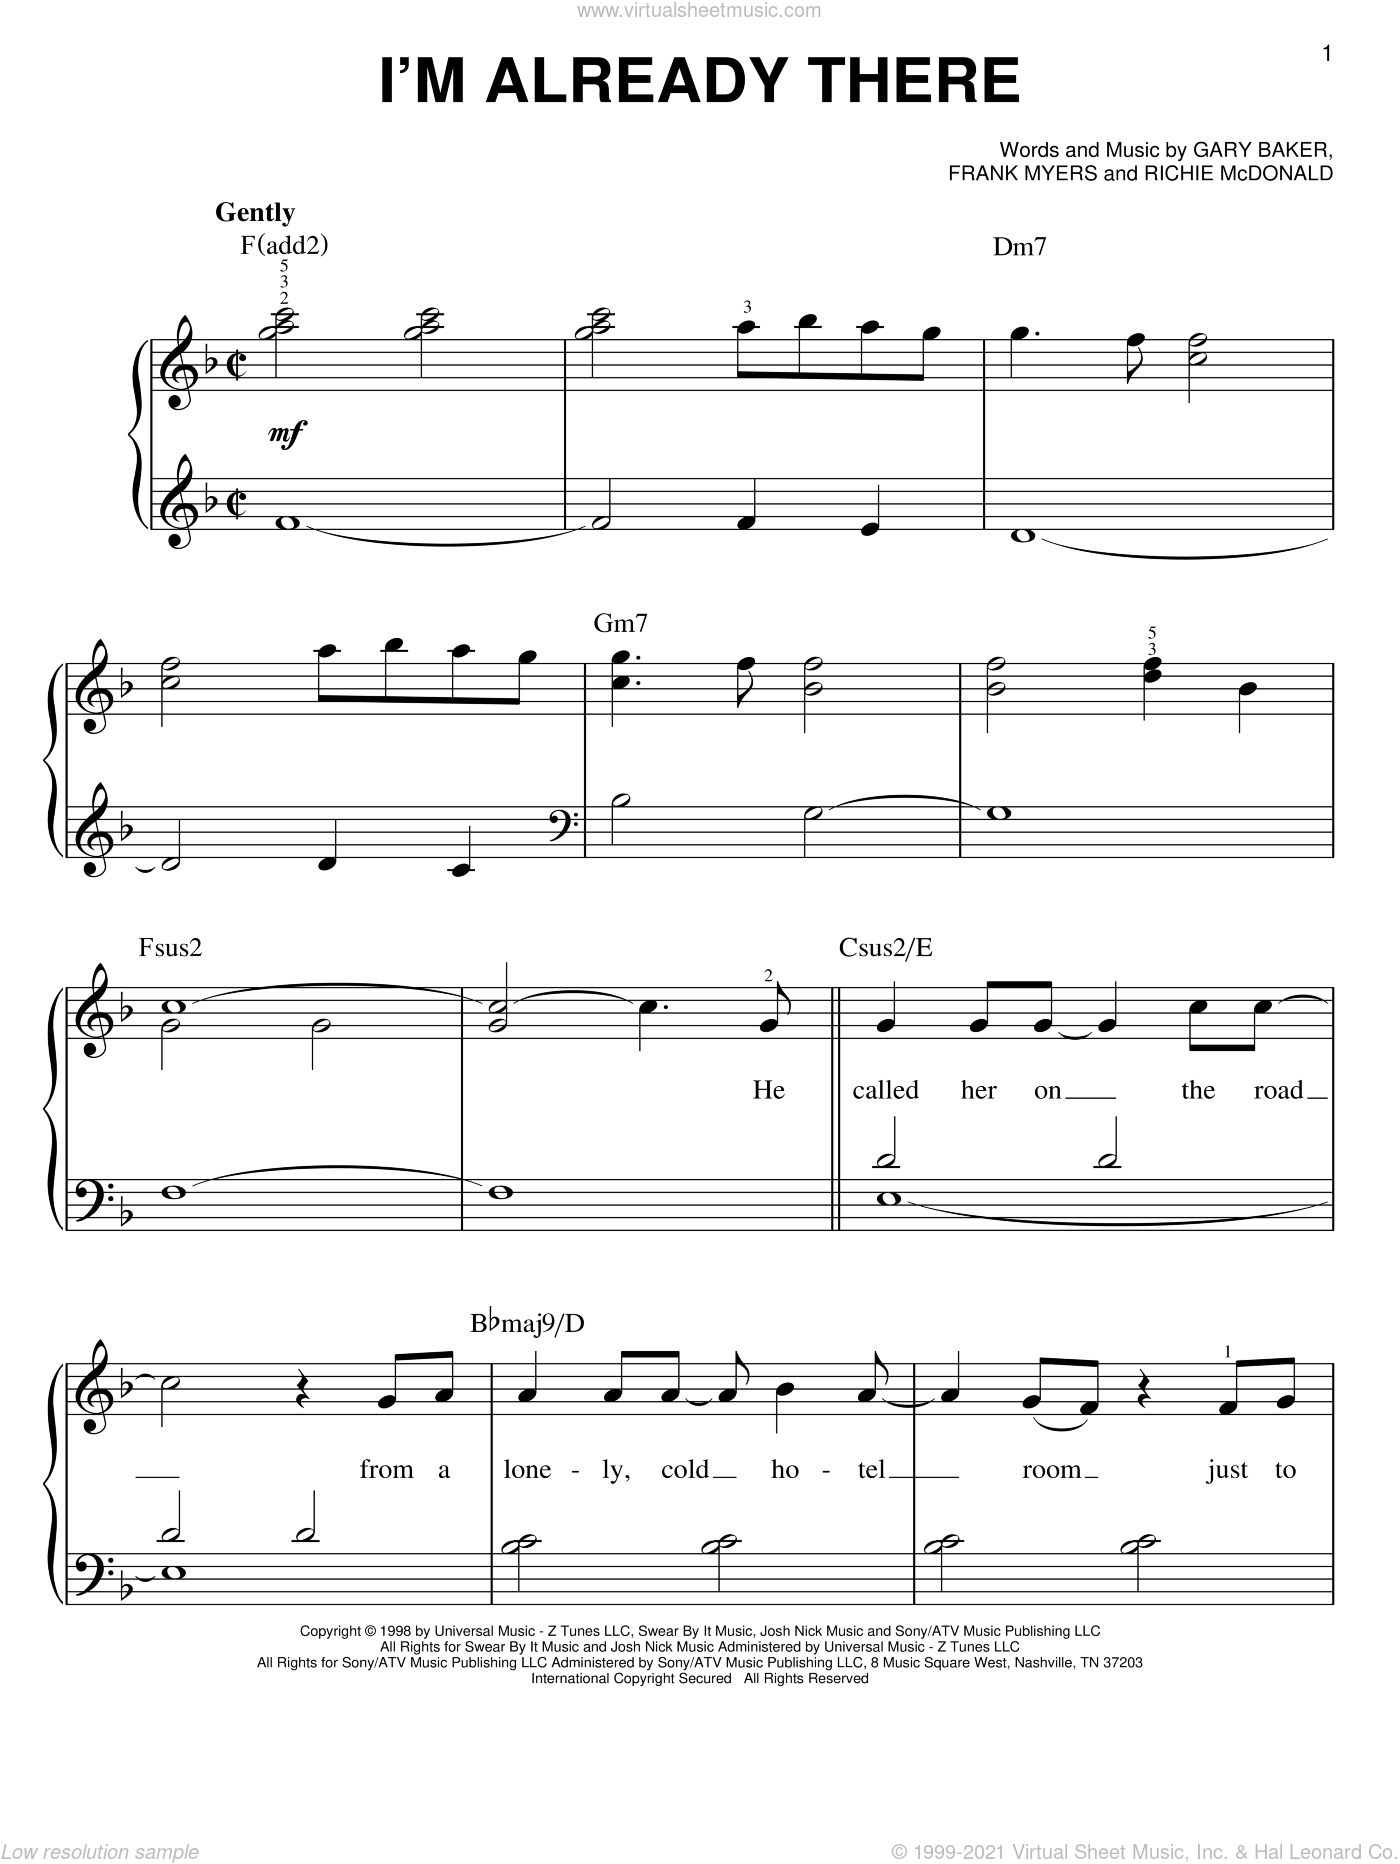 I'm Already There sheet music for piano solo by Richie McDonald, Lonestar, Frank Myers and Gary Baker. Score Image Preview.